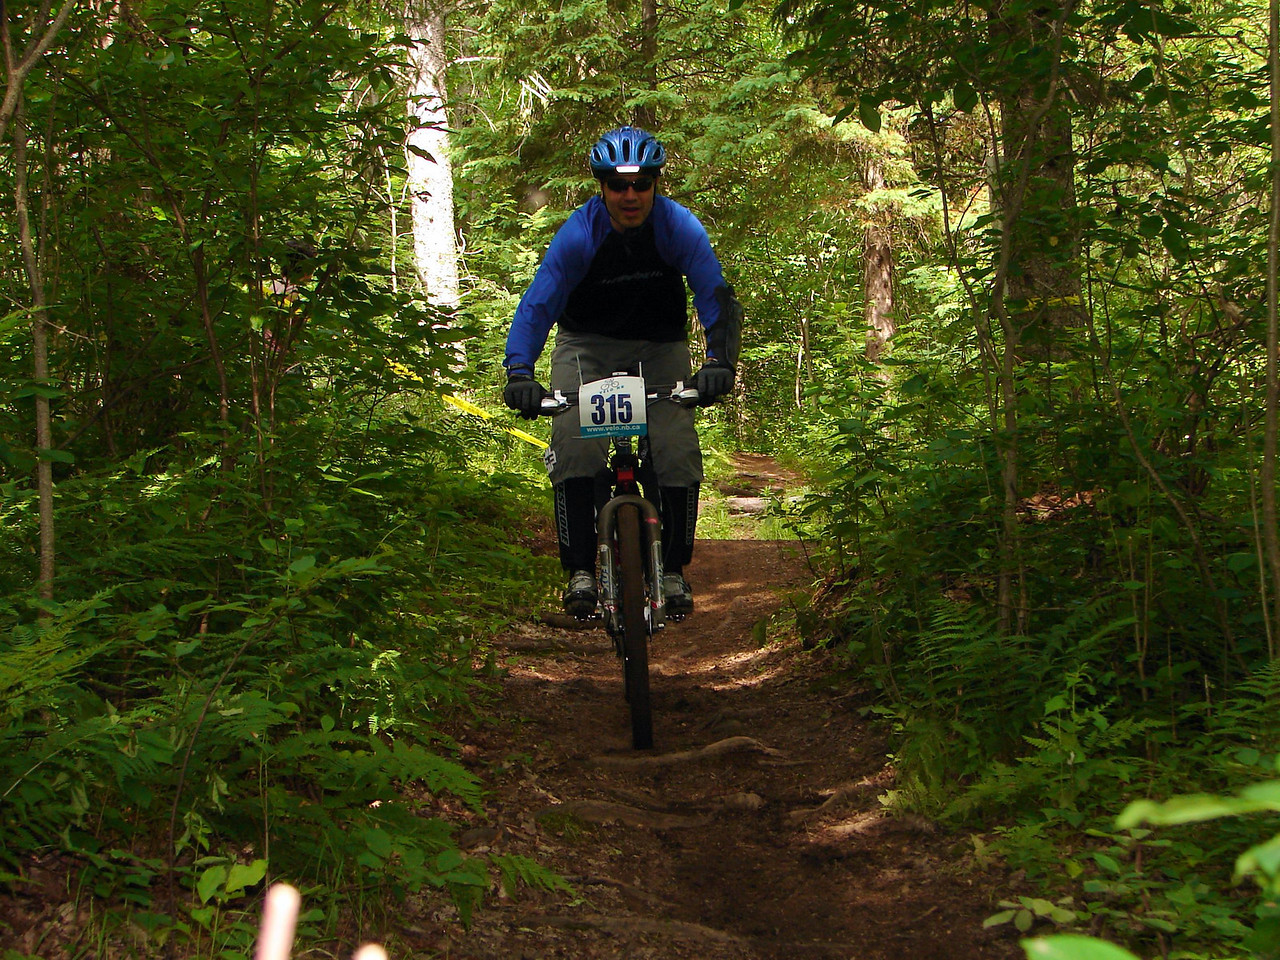 Owning the singletrack